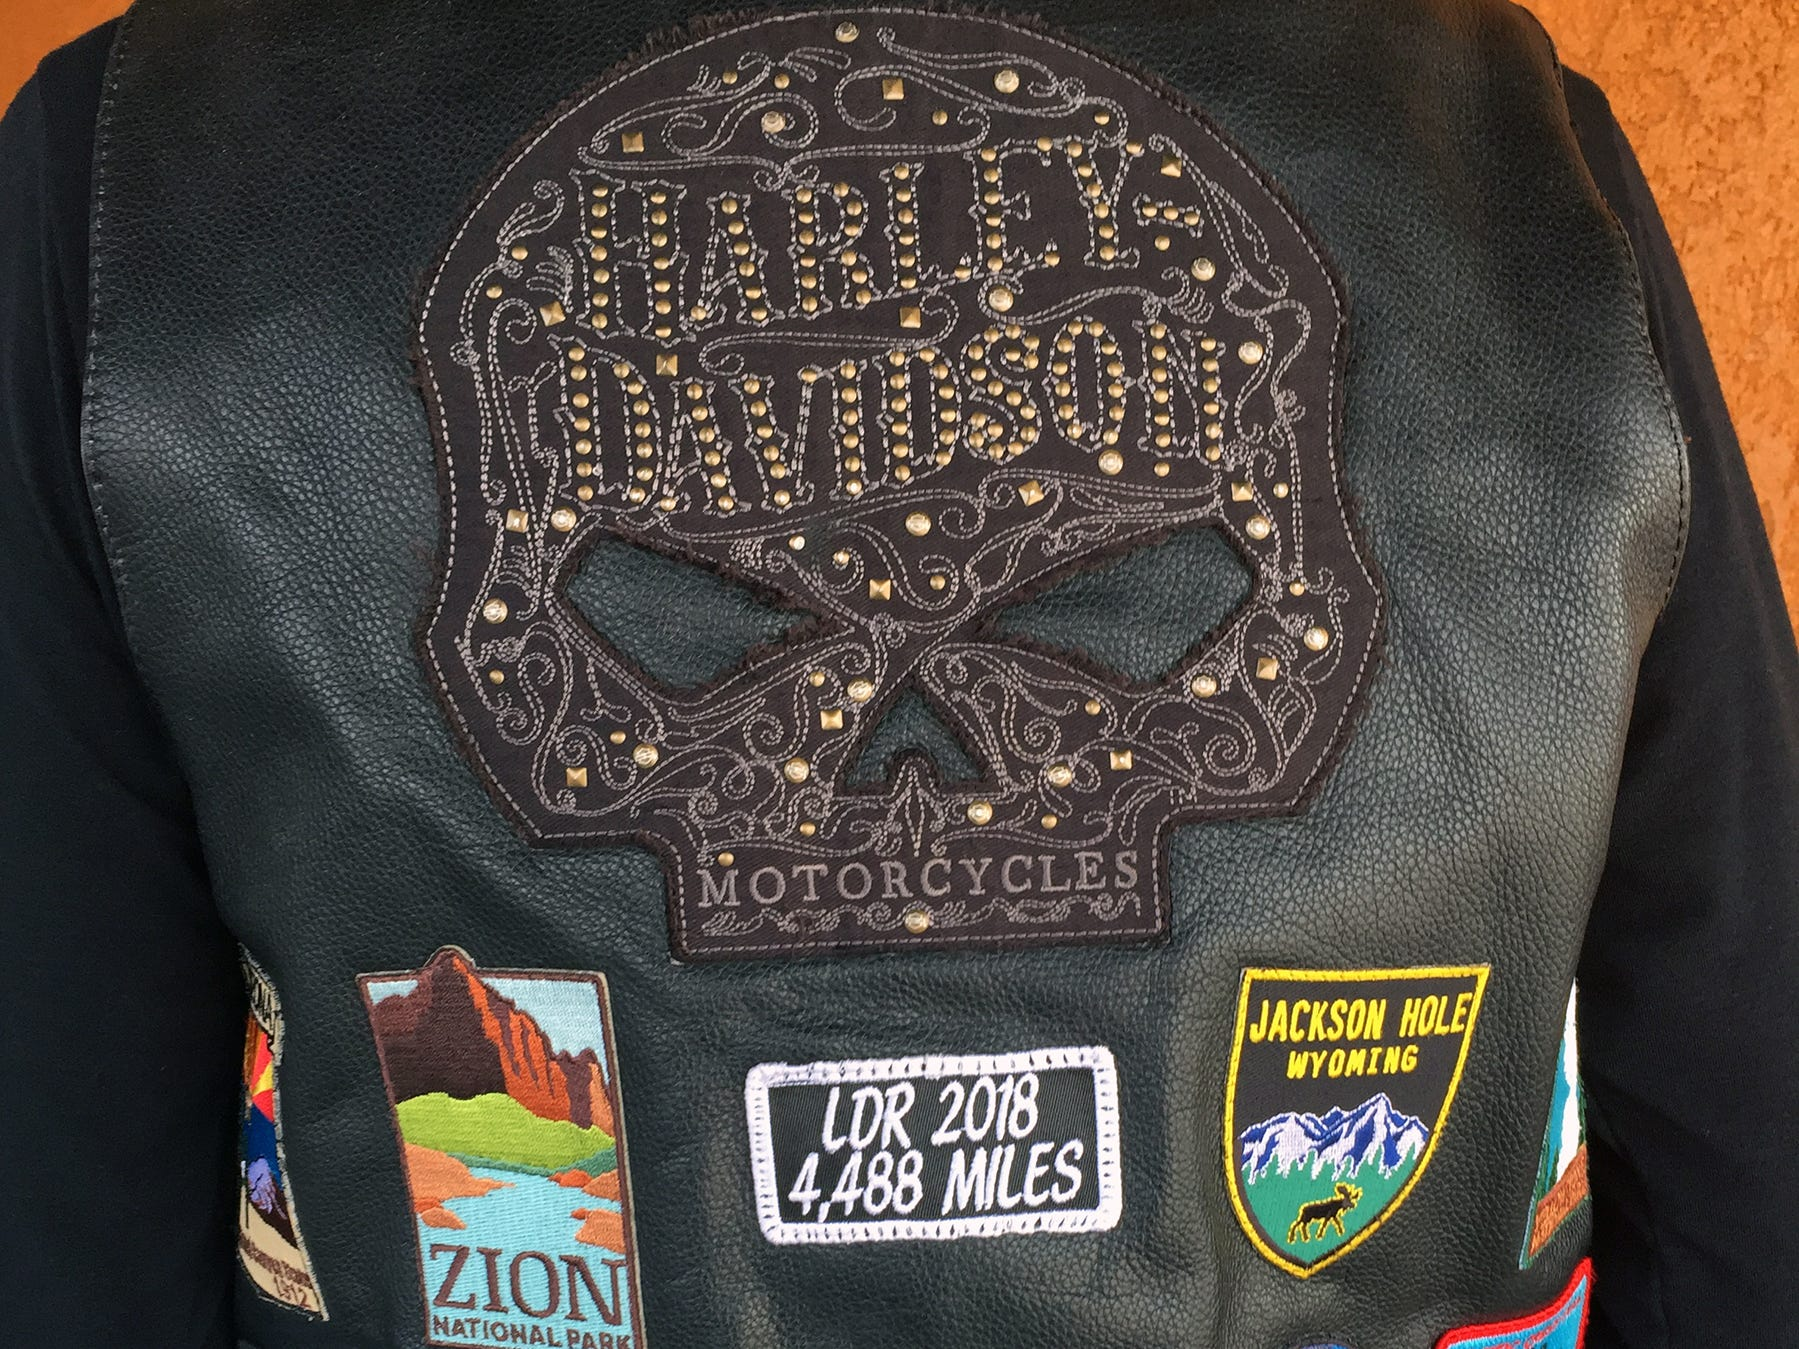 The badges on the back of Pamela Barnett's jacket represent a 5,000-mile, 16-day trip she and her friend Harri Fenske took in June. They went through California, Oregon, Washington, Wyoming, Montana, Idaho and Utah.